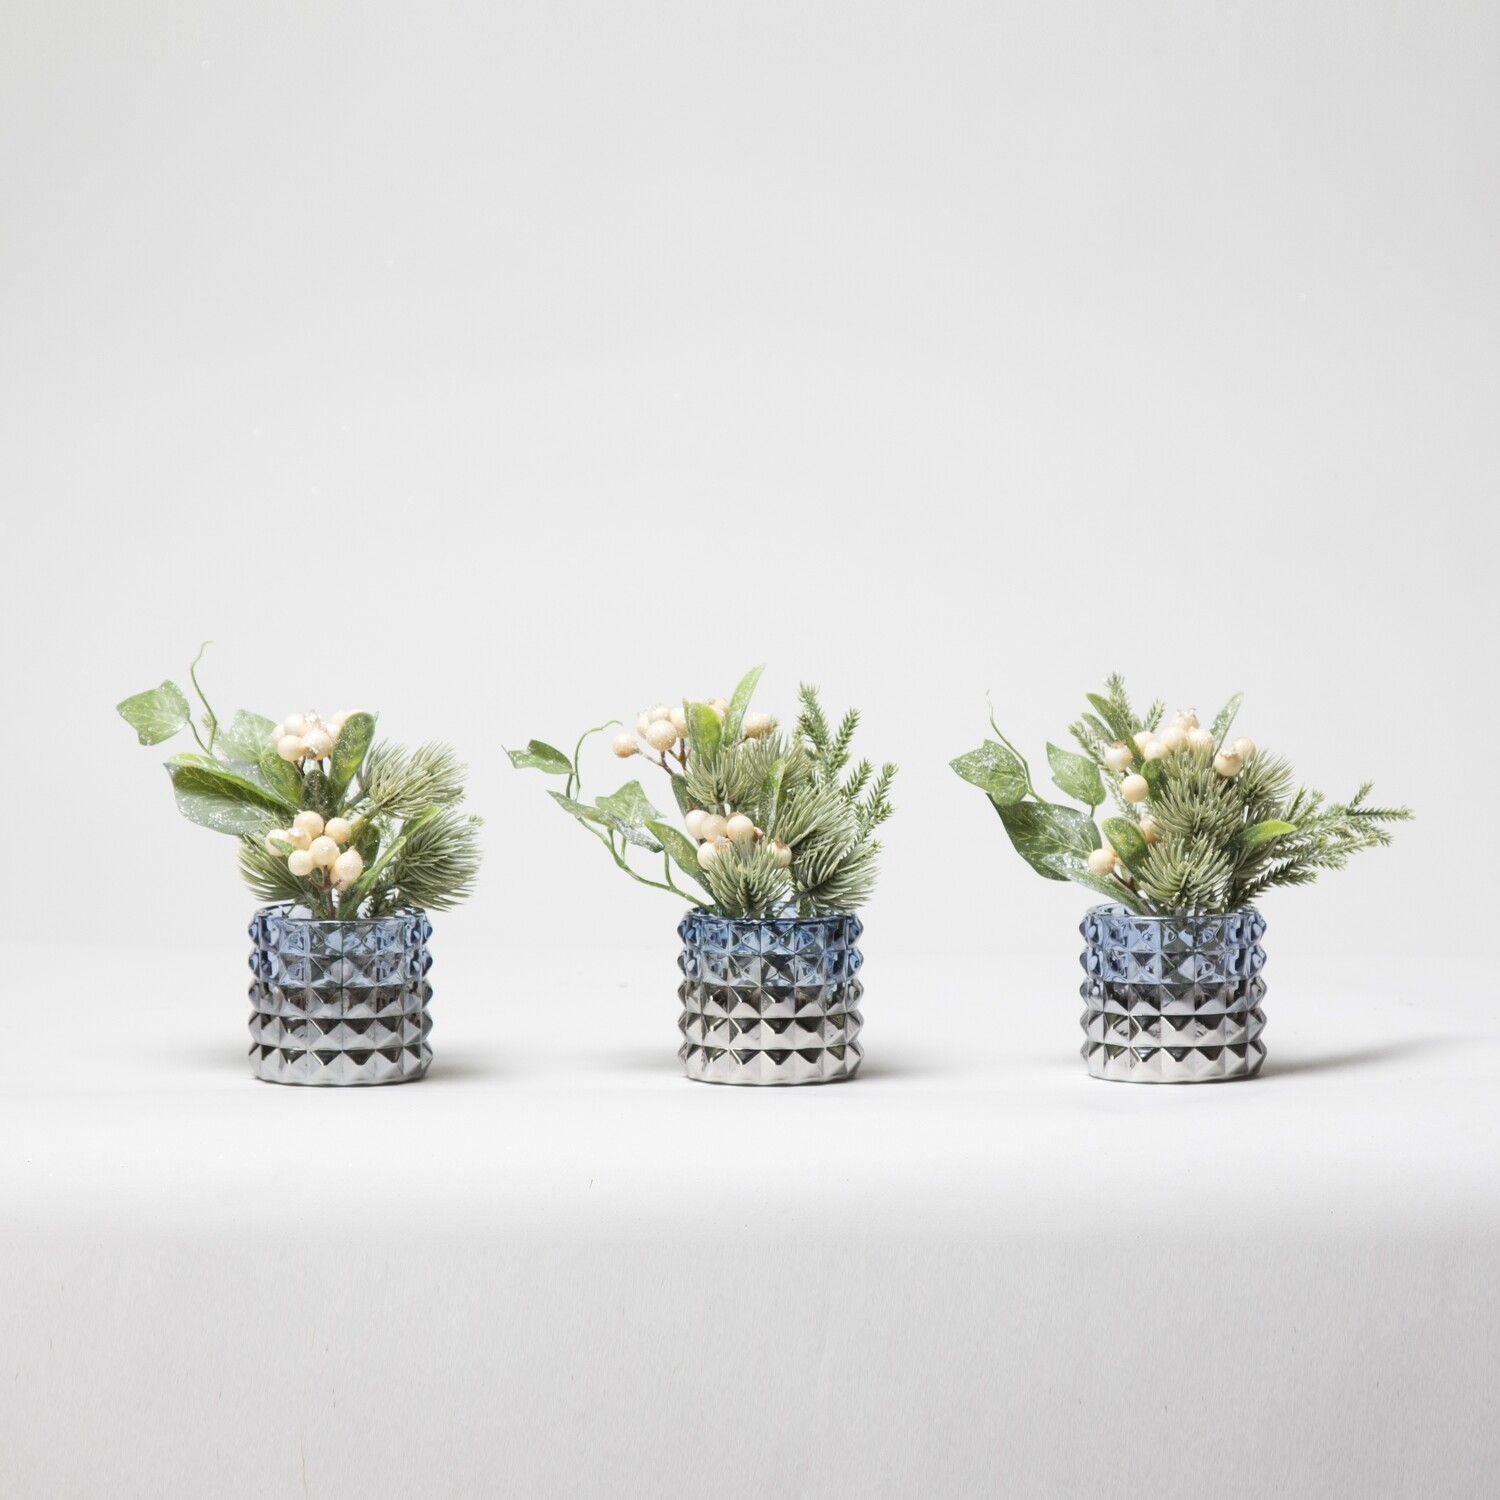 Set of Three Berries, Foliage and Ivory in Textured Pots - Cream / Green